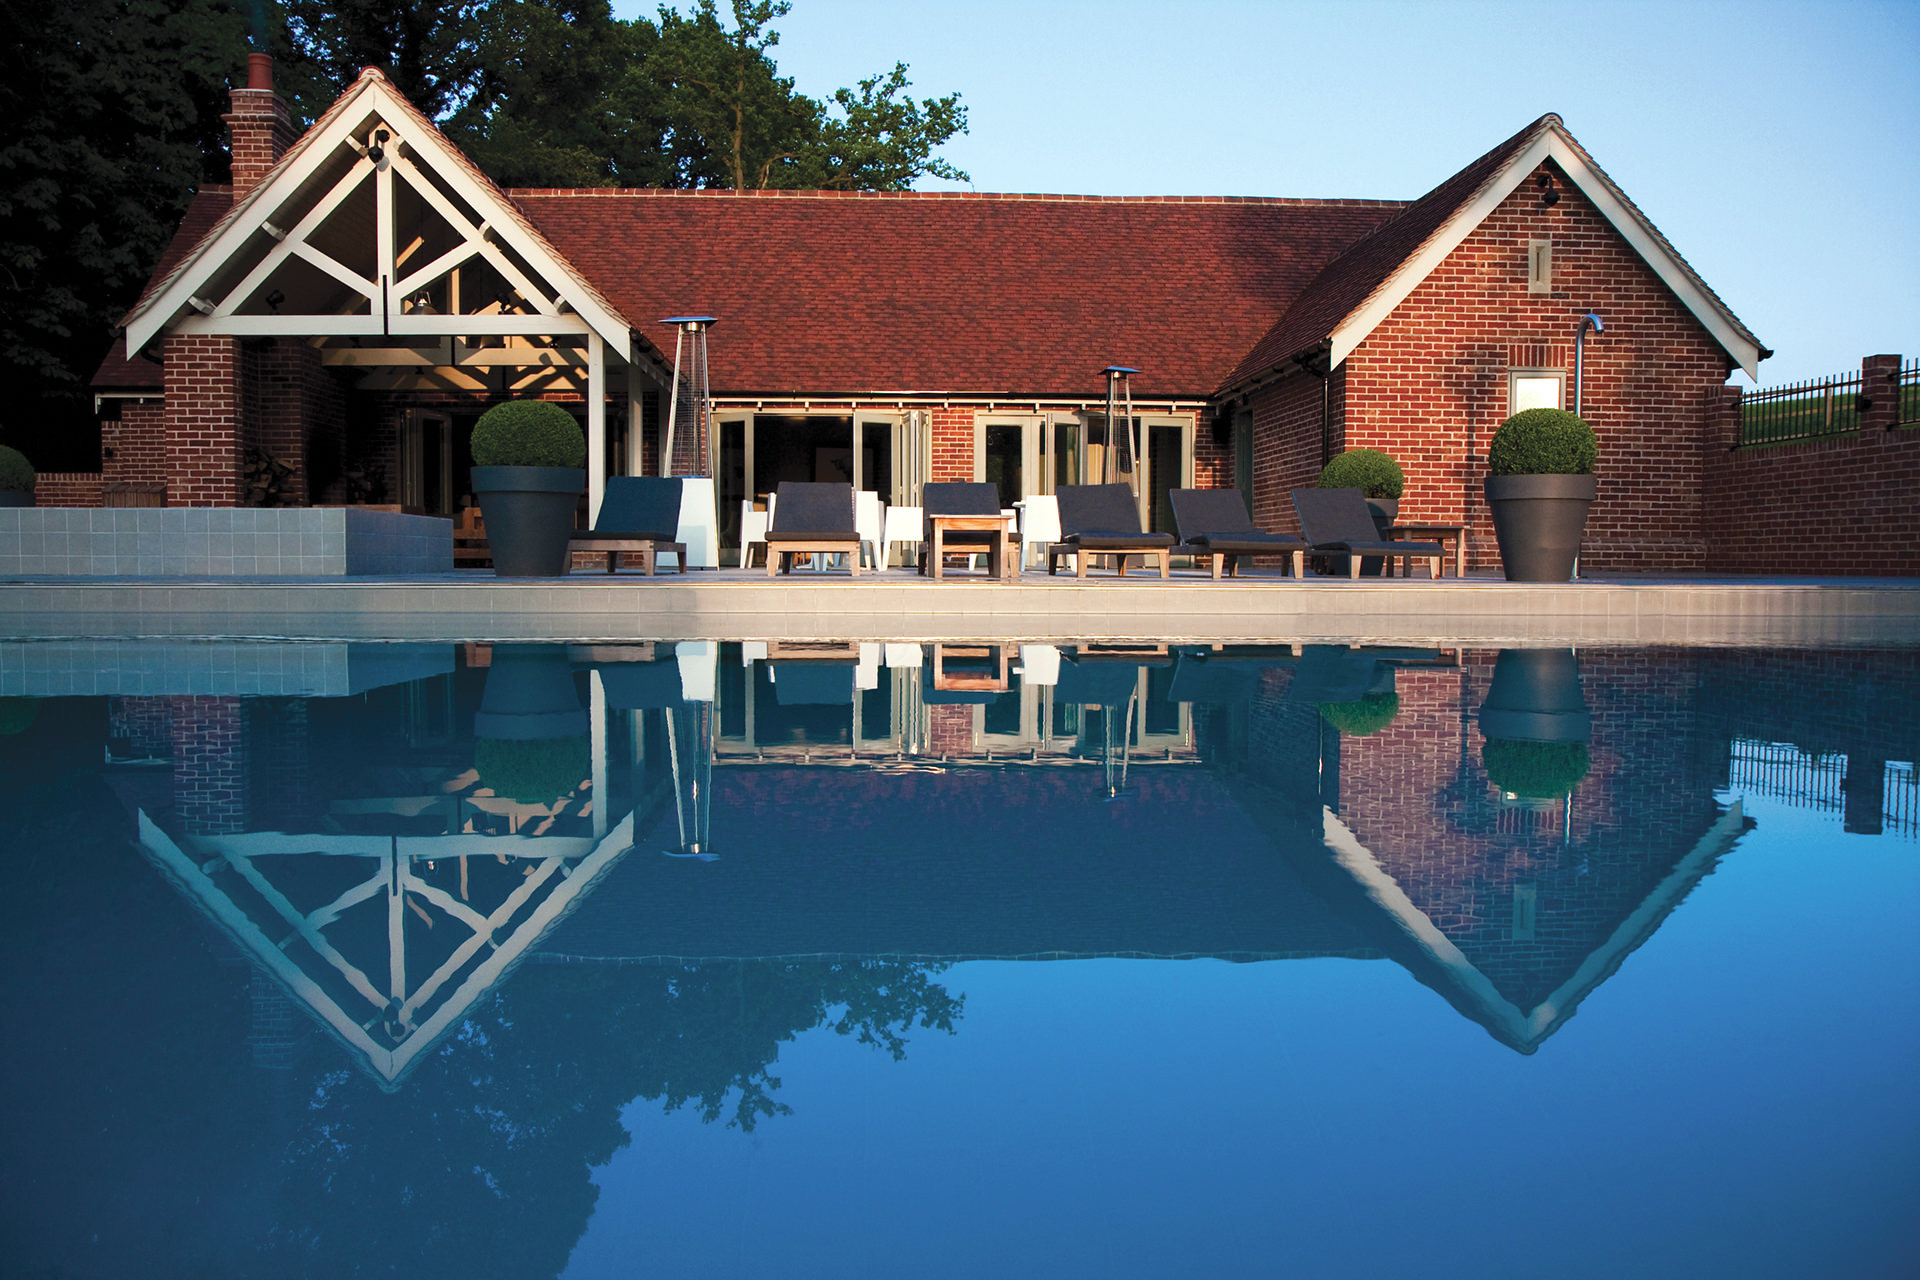 The pool at Maison Talbooth in Dedham, Essex